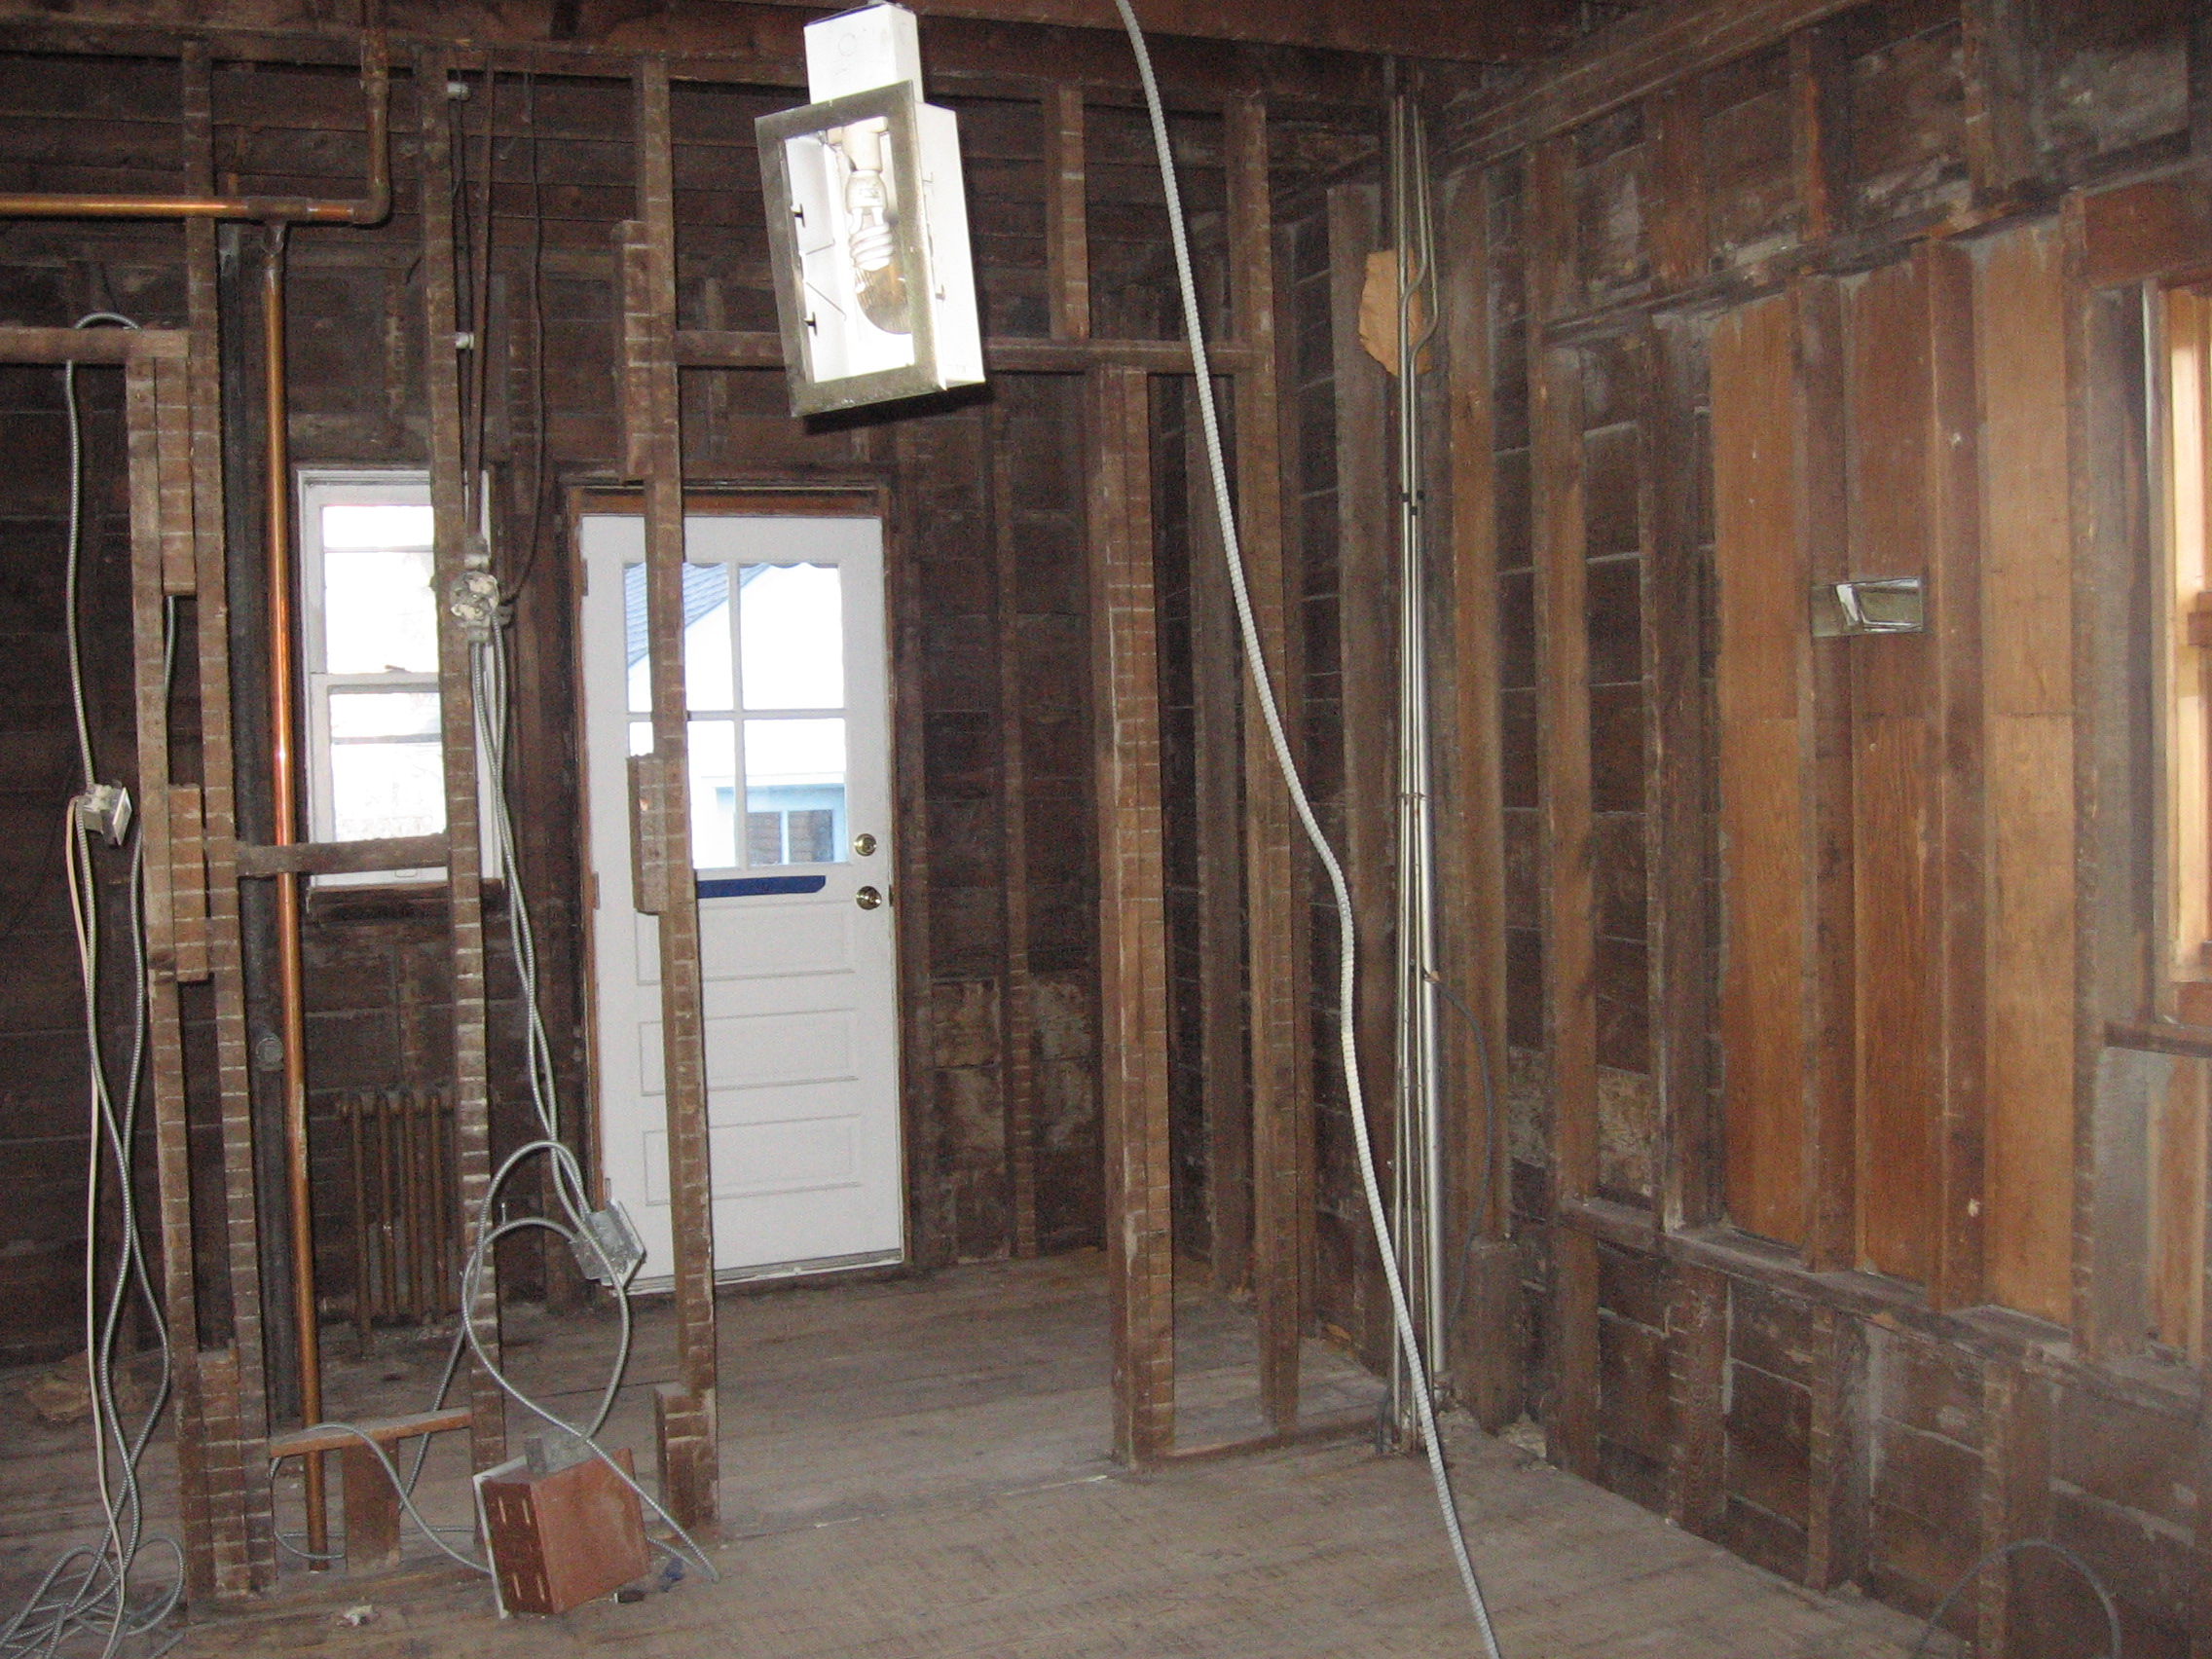 This Old House Part Two Apt 11d Rewiring An Plaster Walls Then The Guys Rewired Place Put In Lights Cabinets Three Windows They New Back Steps And A Backdoor Repaired Some Surprising